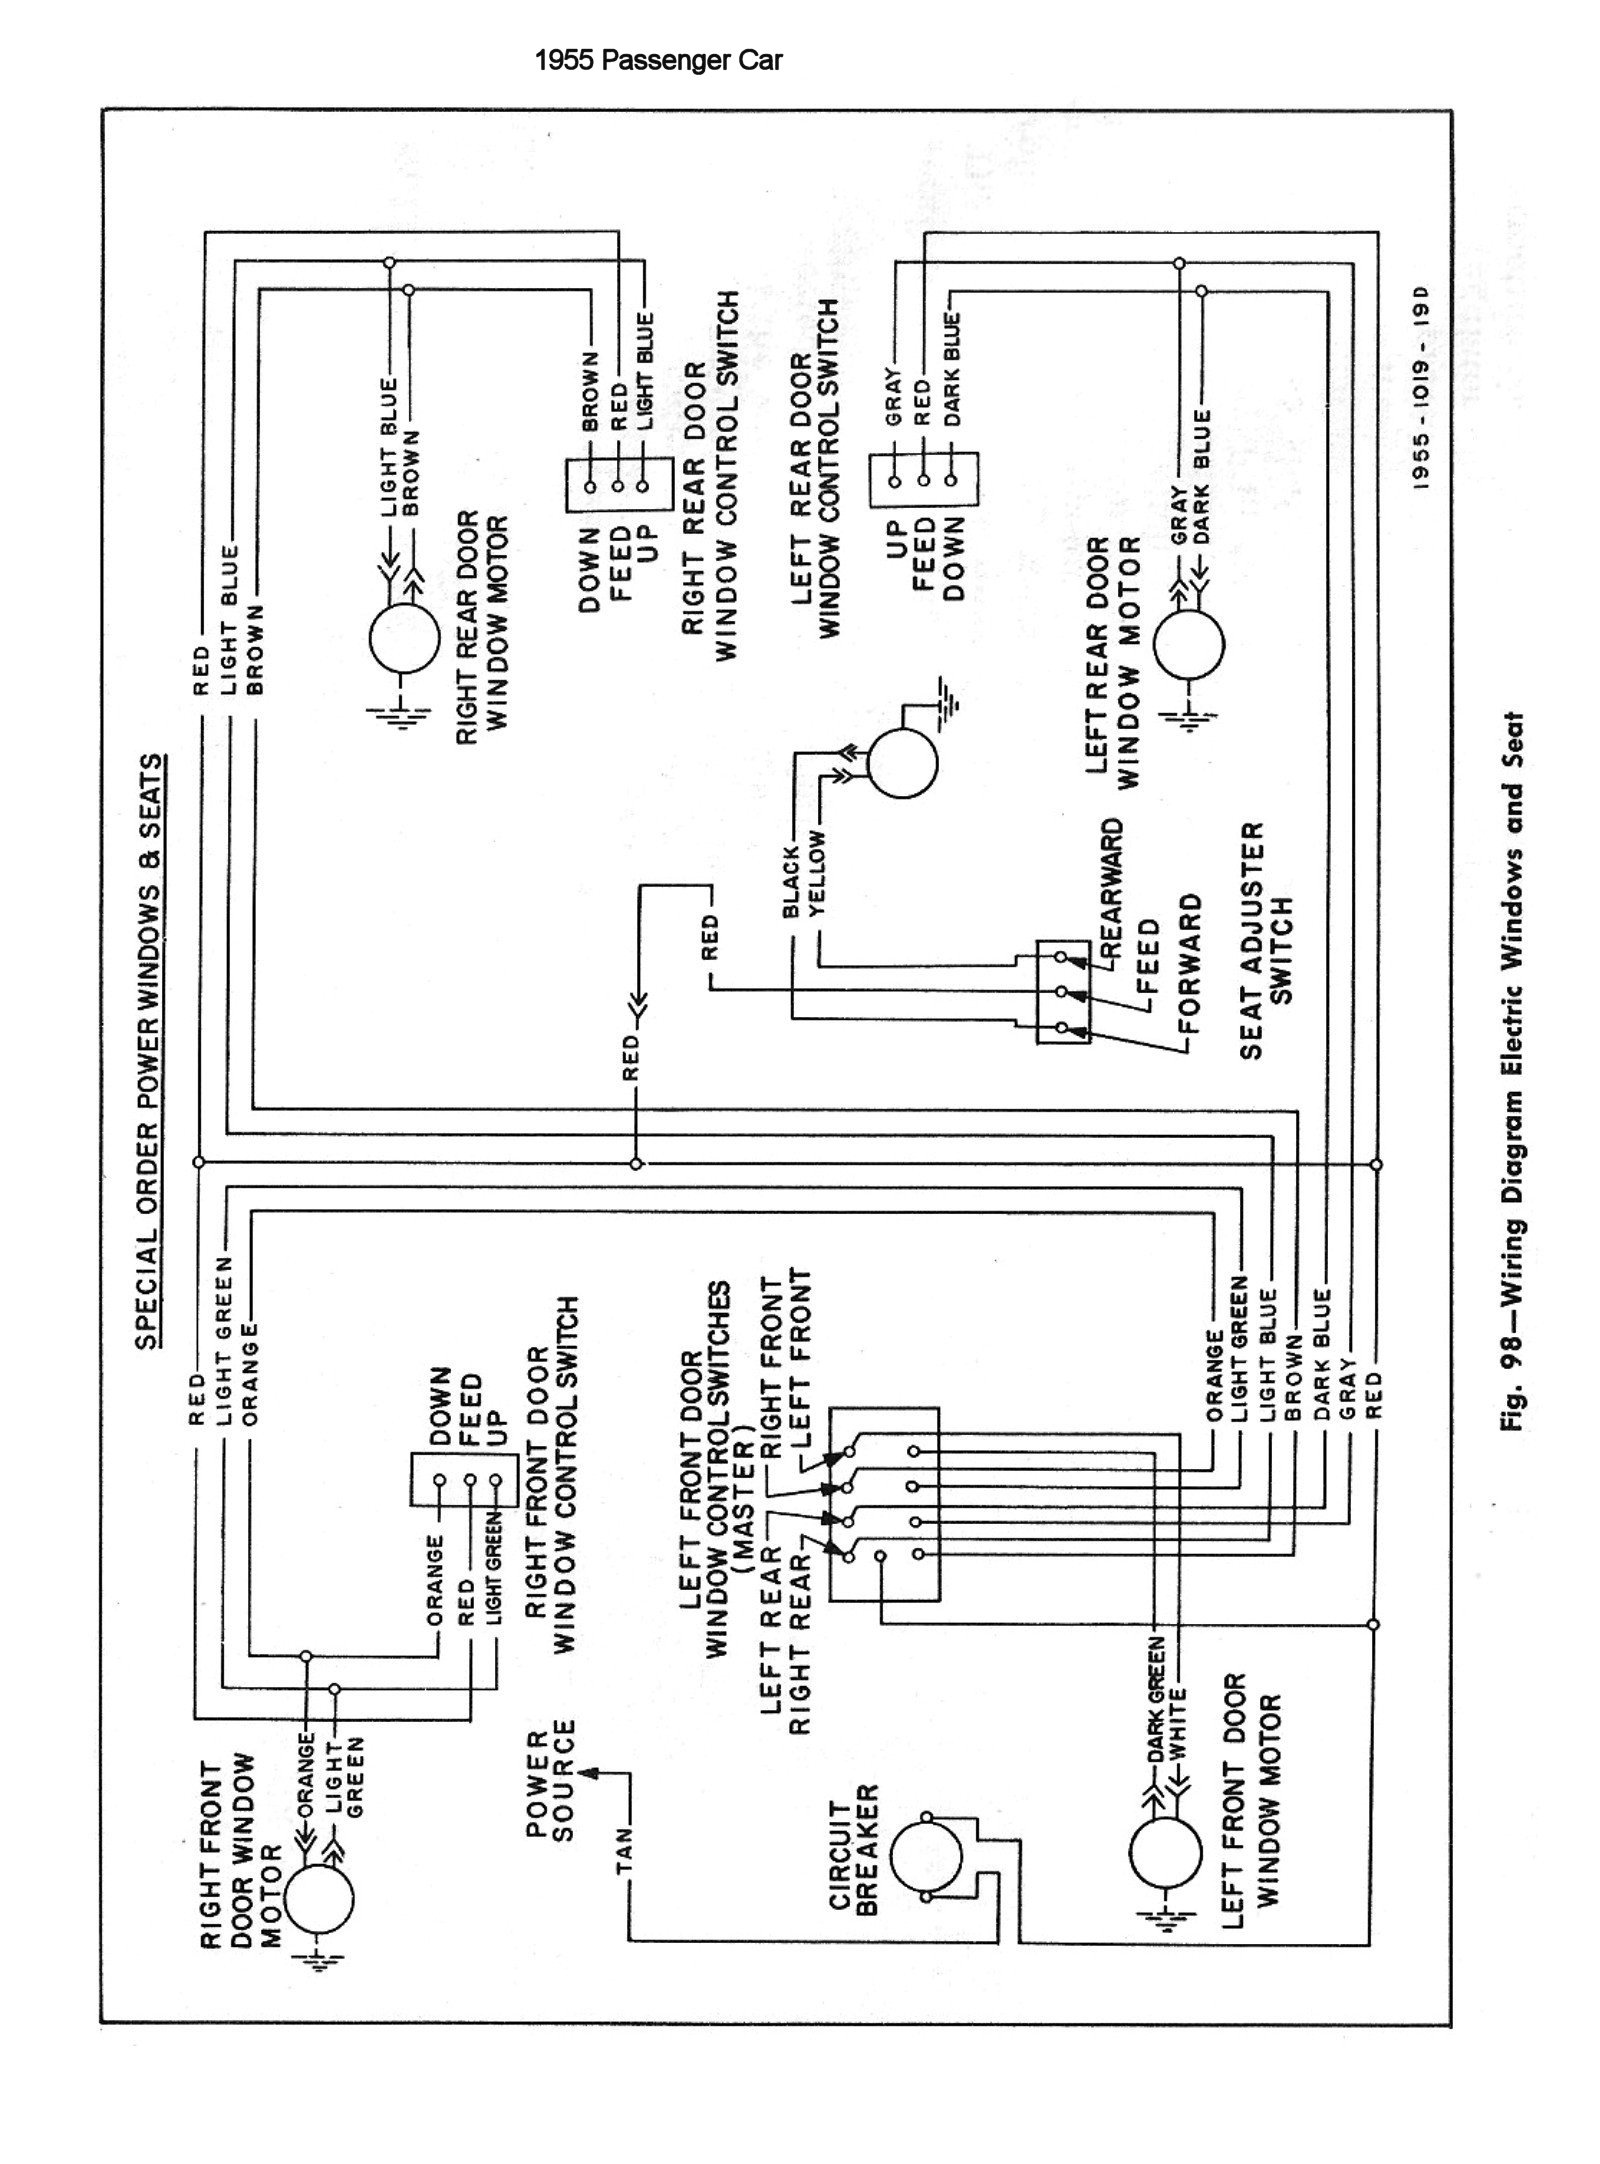 1985 chevy truck wiring diagram 1985 image wiring diagram 55 chevy truck the wiring diagram on 1985 chevy truck wiring diagram